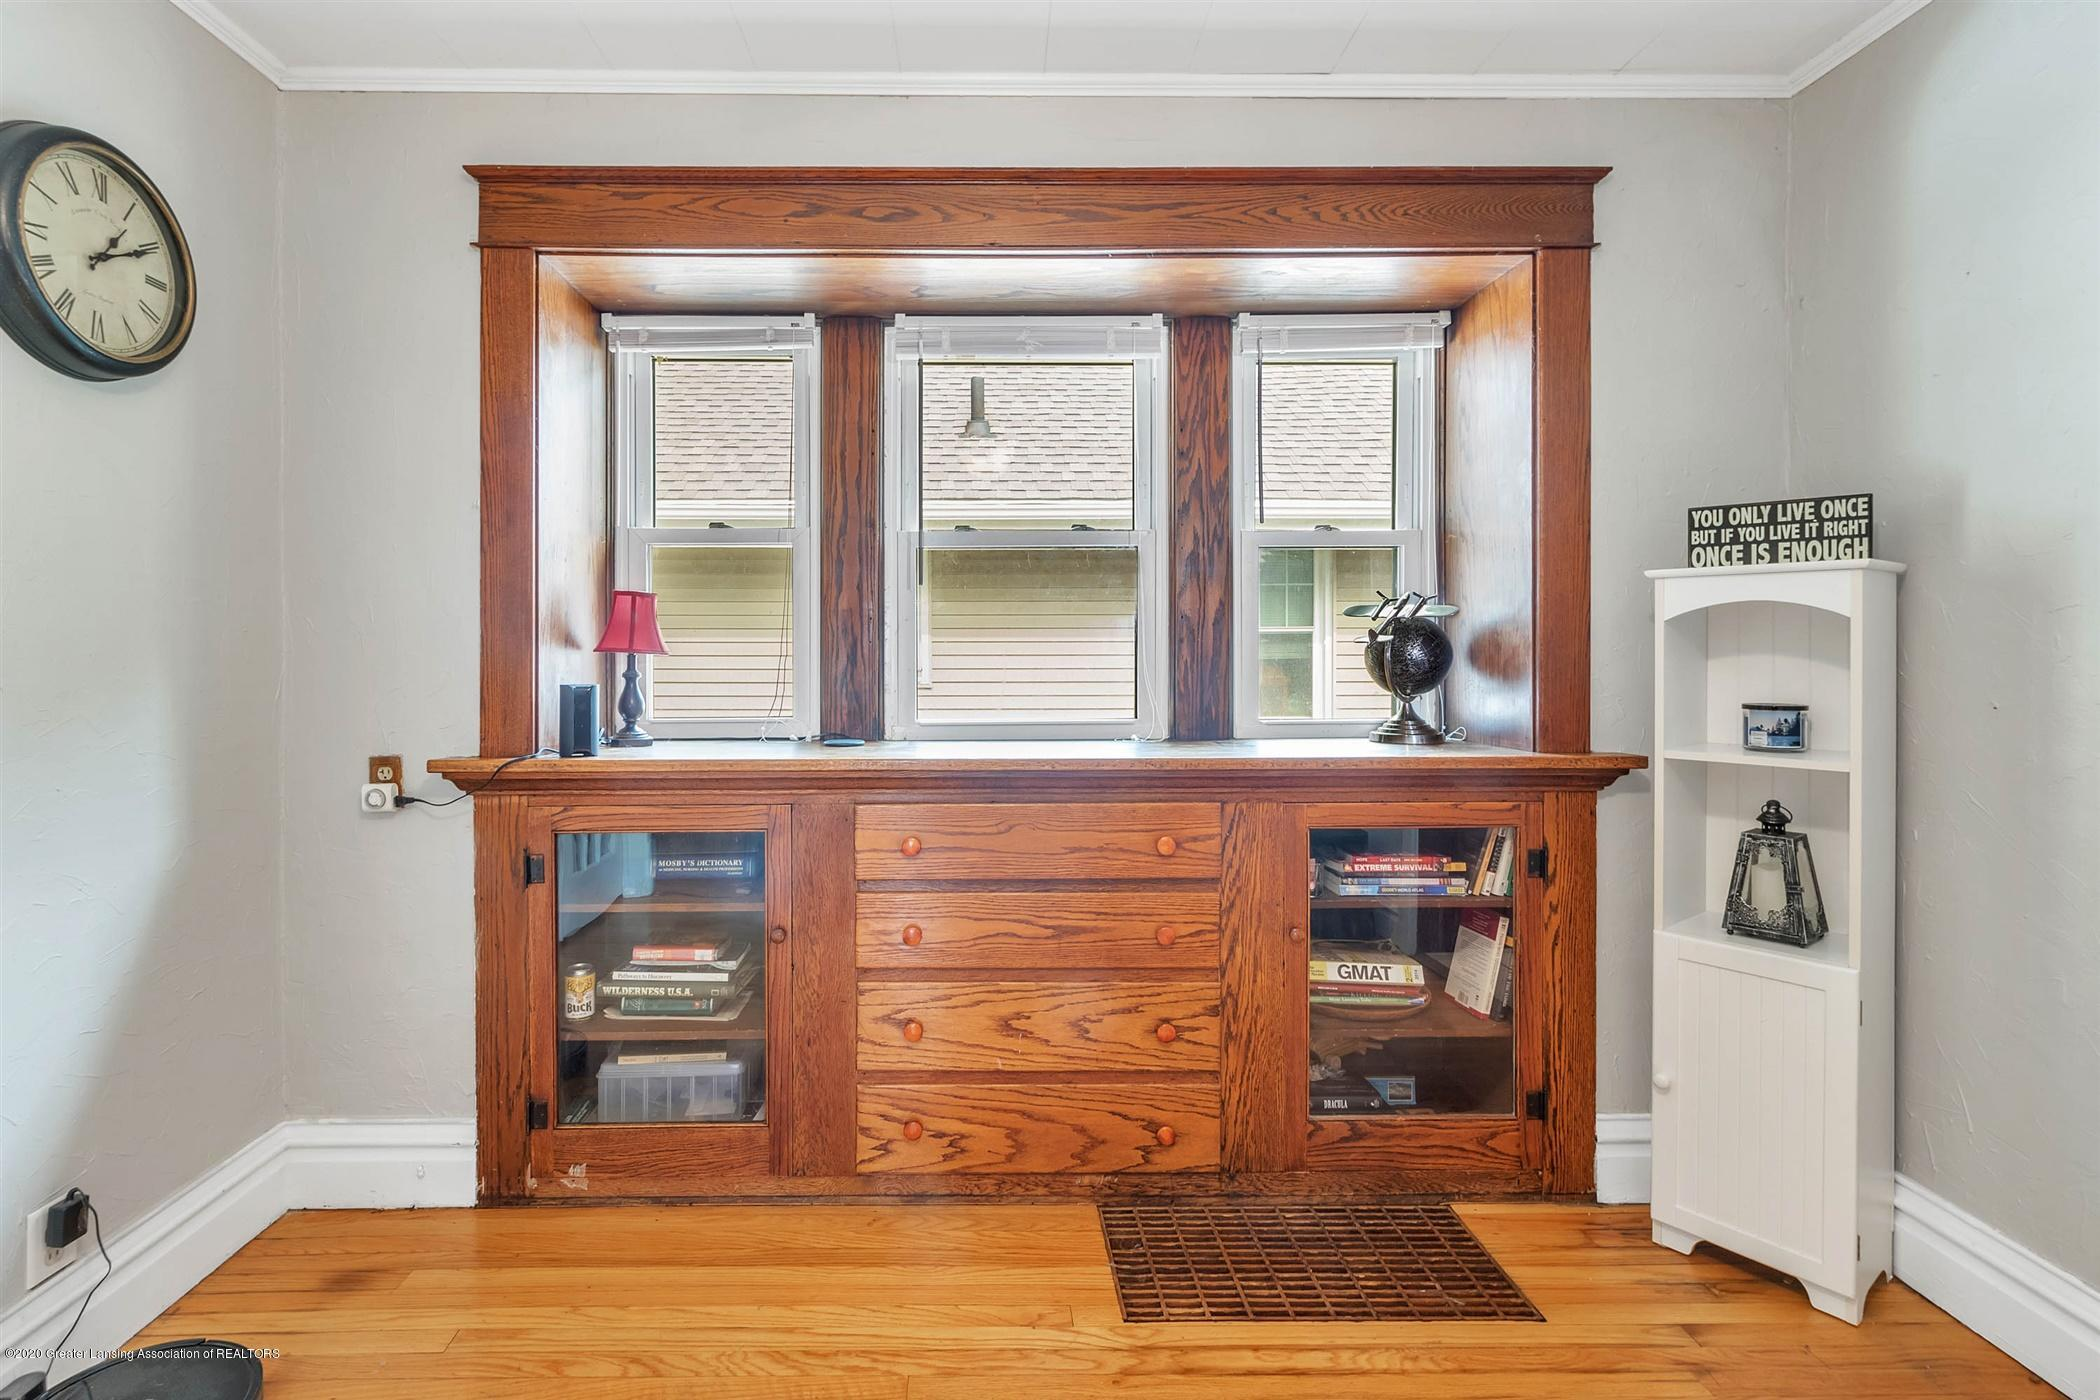 2127 Forest Ave - 11-2127 Forest Ave-WindowStill-Real - 11